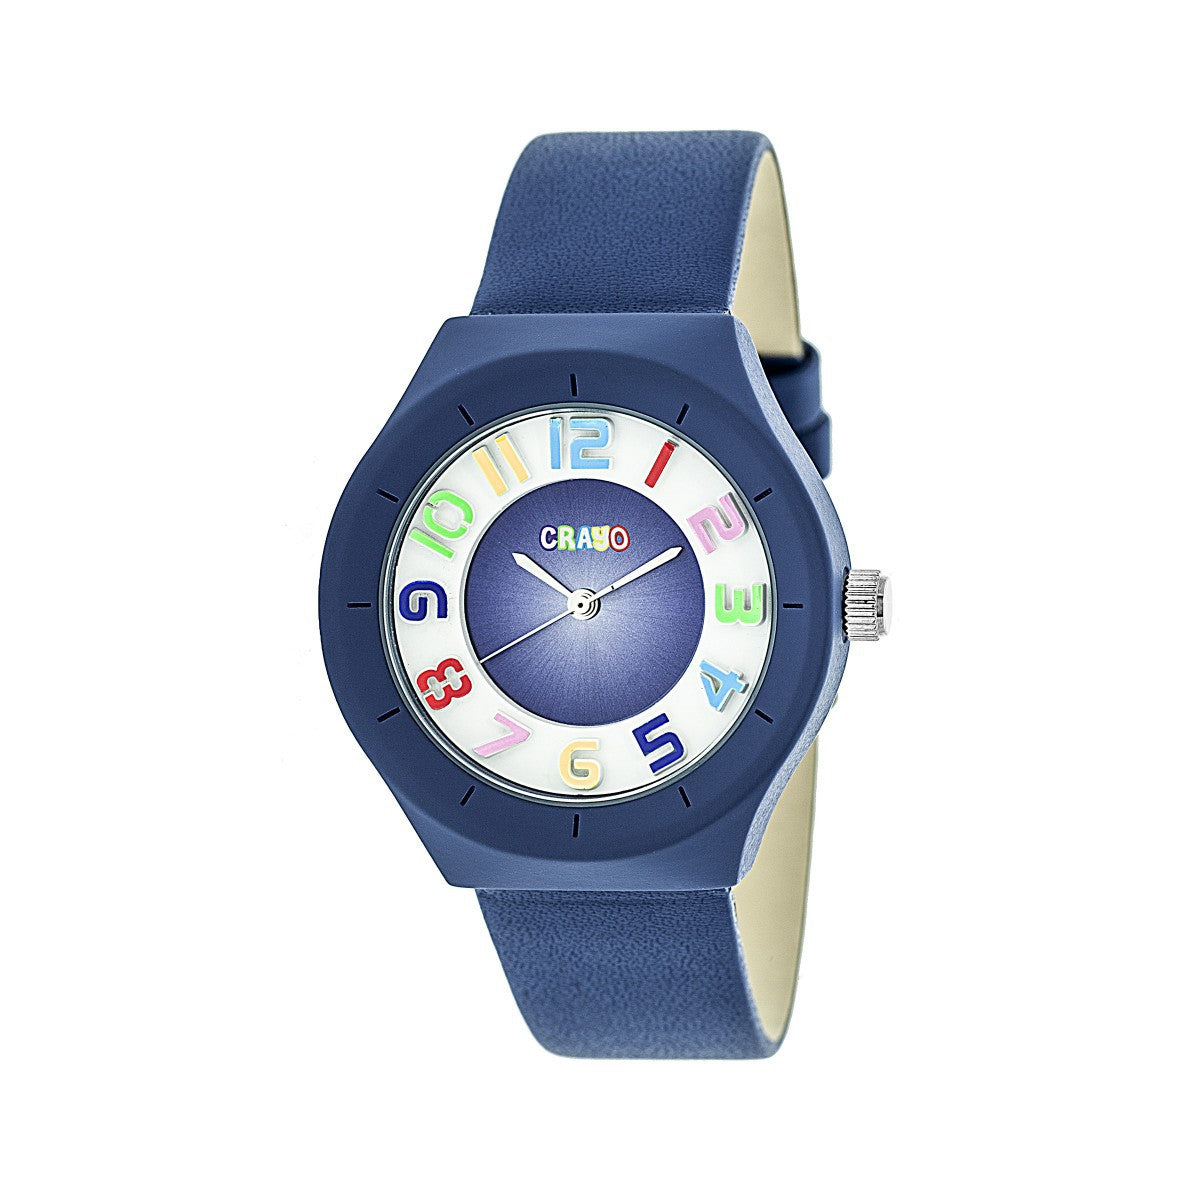 Crayo Atomic Unisex Watch - Blue - CRACR3506